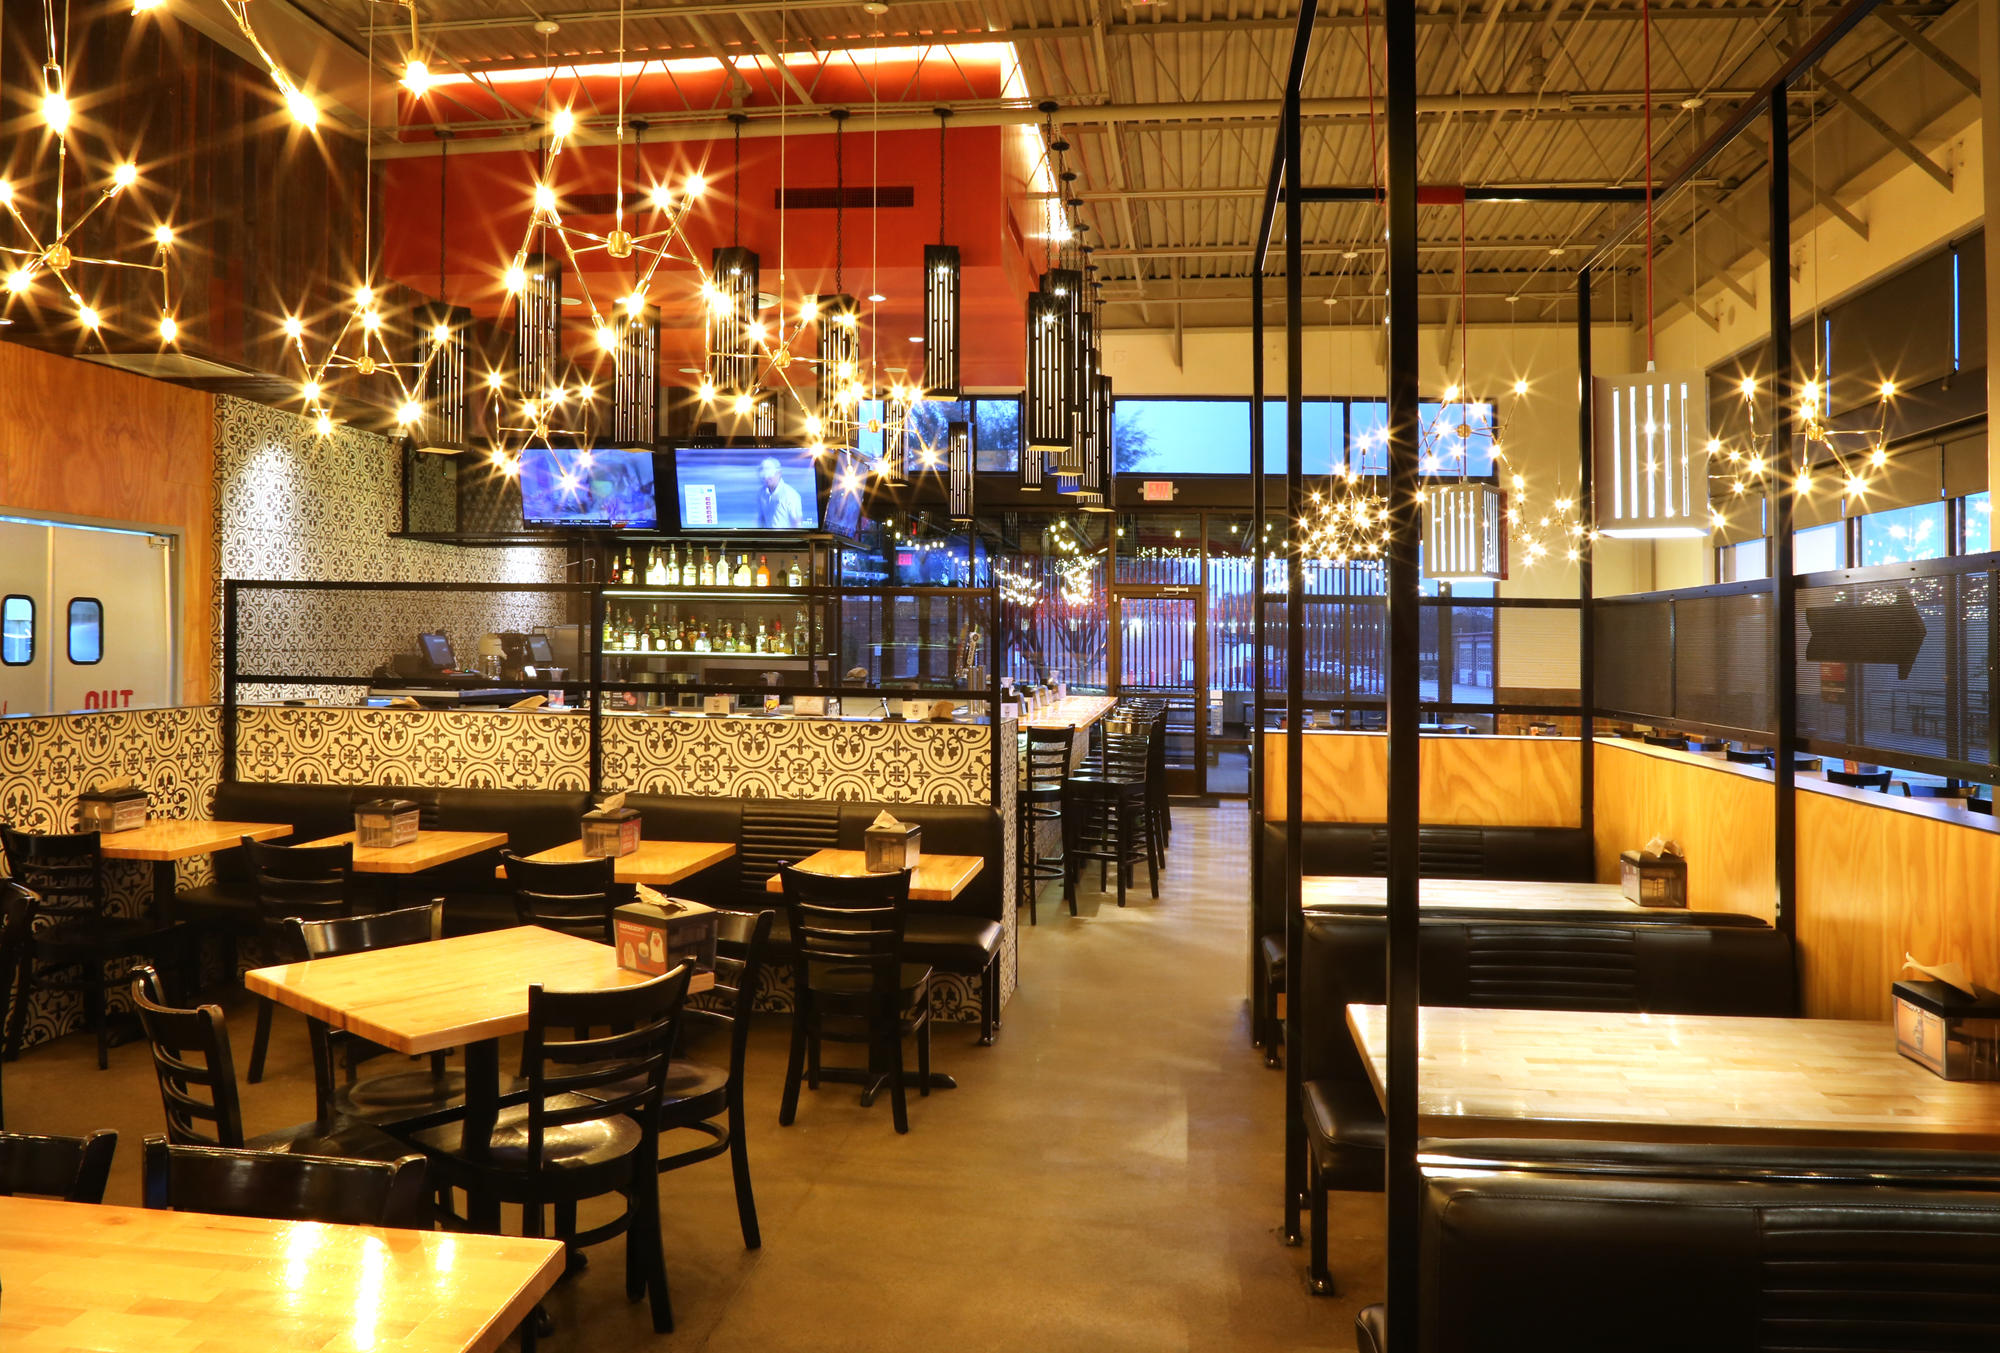 Torchy's Tacos image 7